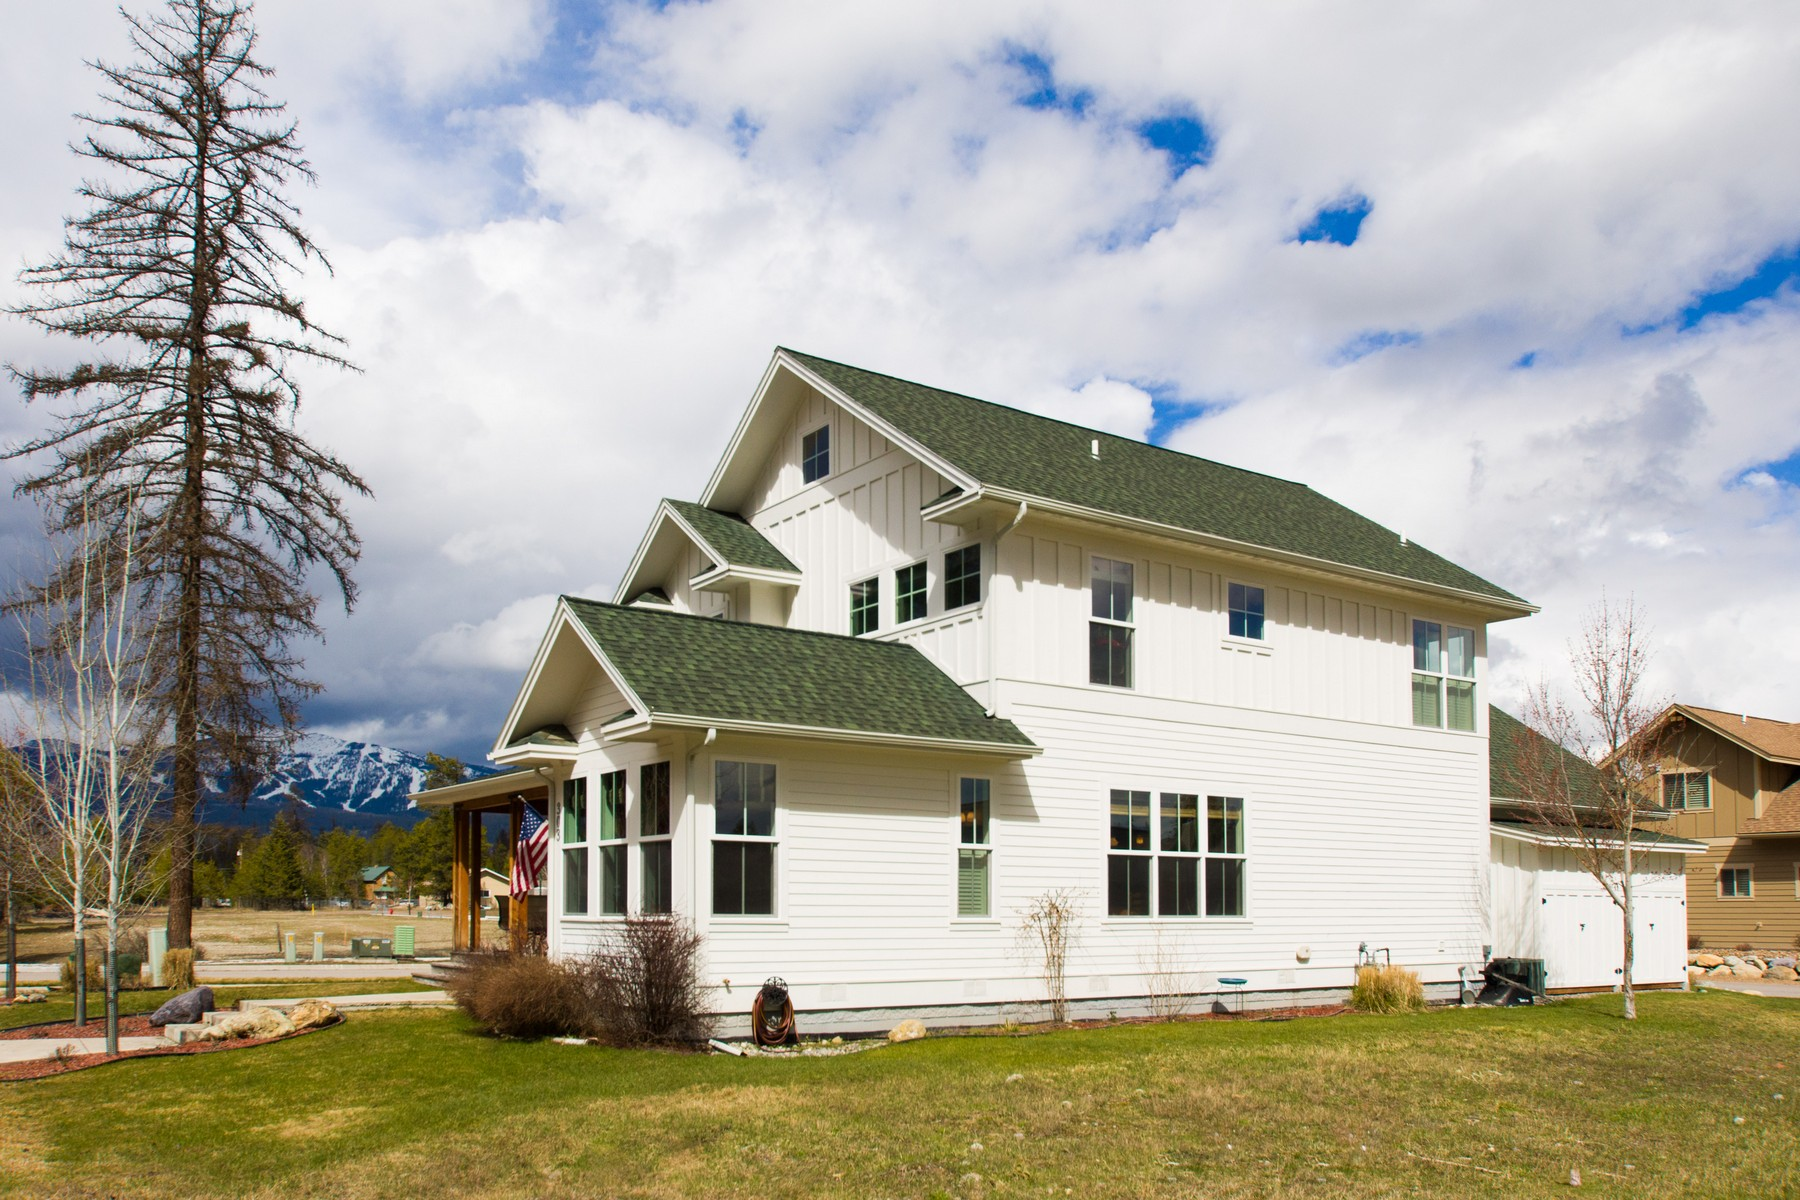 Additional photo for property listing at 303 Stumptown Loop, Whitefish, MT 59937 303  Stumptown Loop Whitefish, Montana 59937 United States